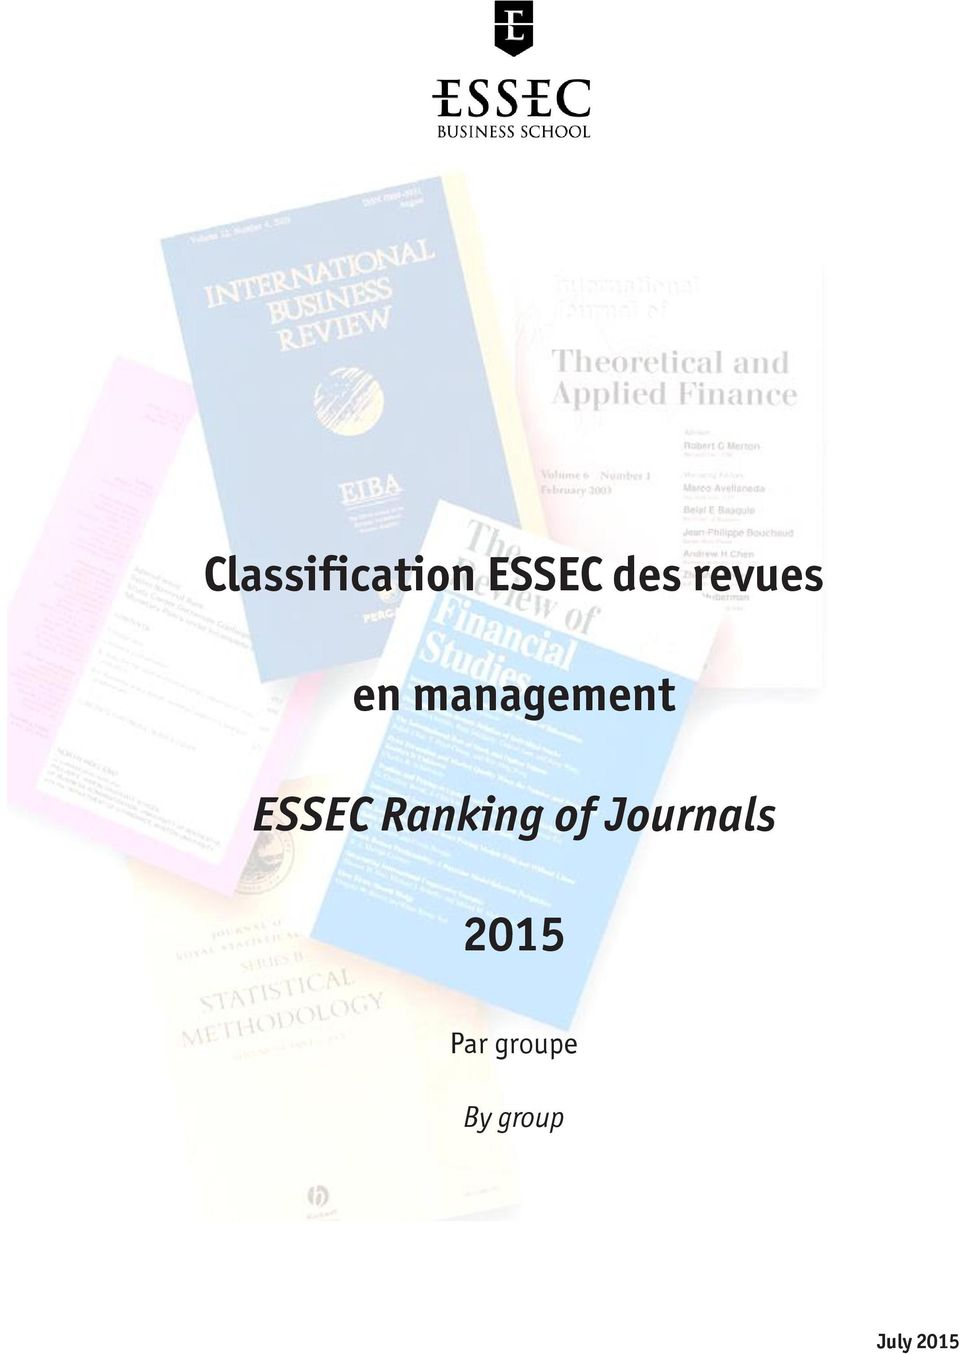 ESSEC Ranking of Journals